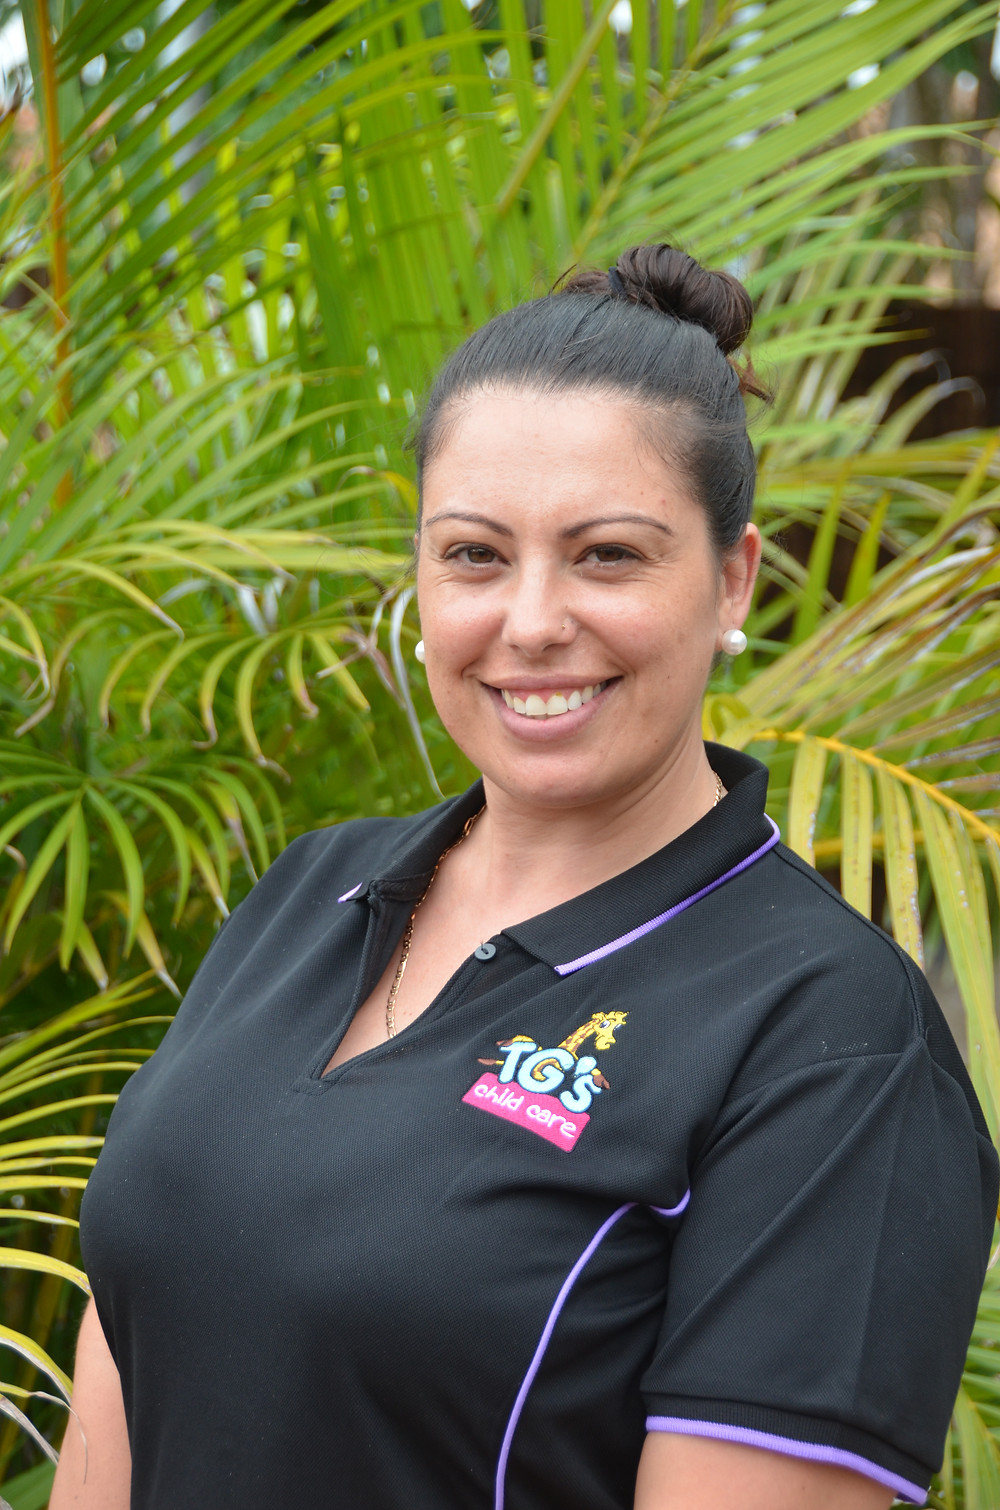 Belinda Russo University-qualified Early Childhood Teacher and the Team Leader in Kindergarten Room at TG´s Child Care Urangan